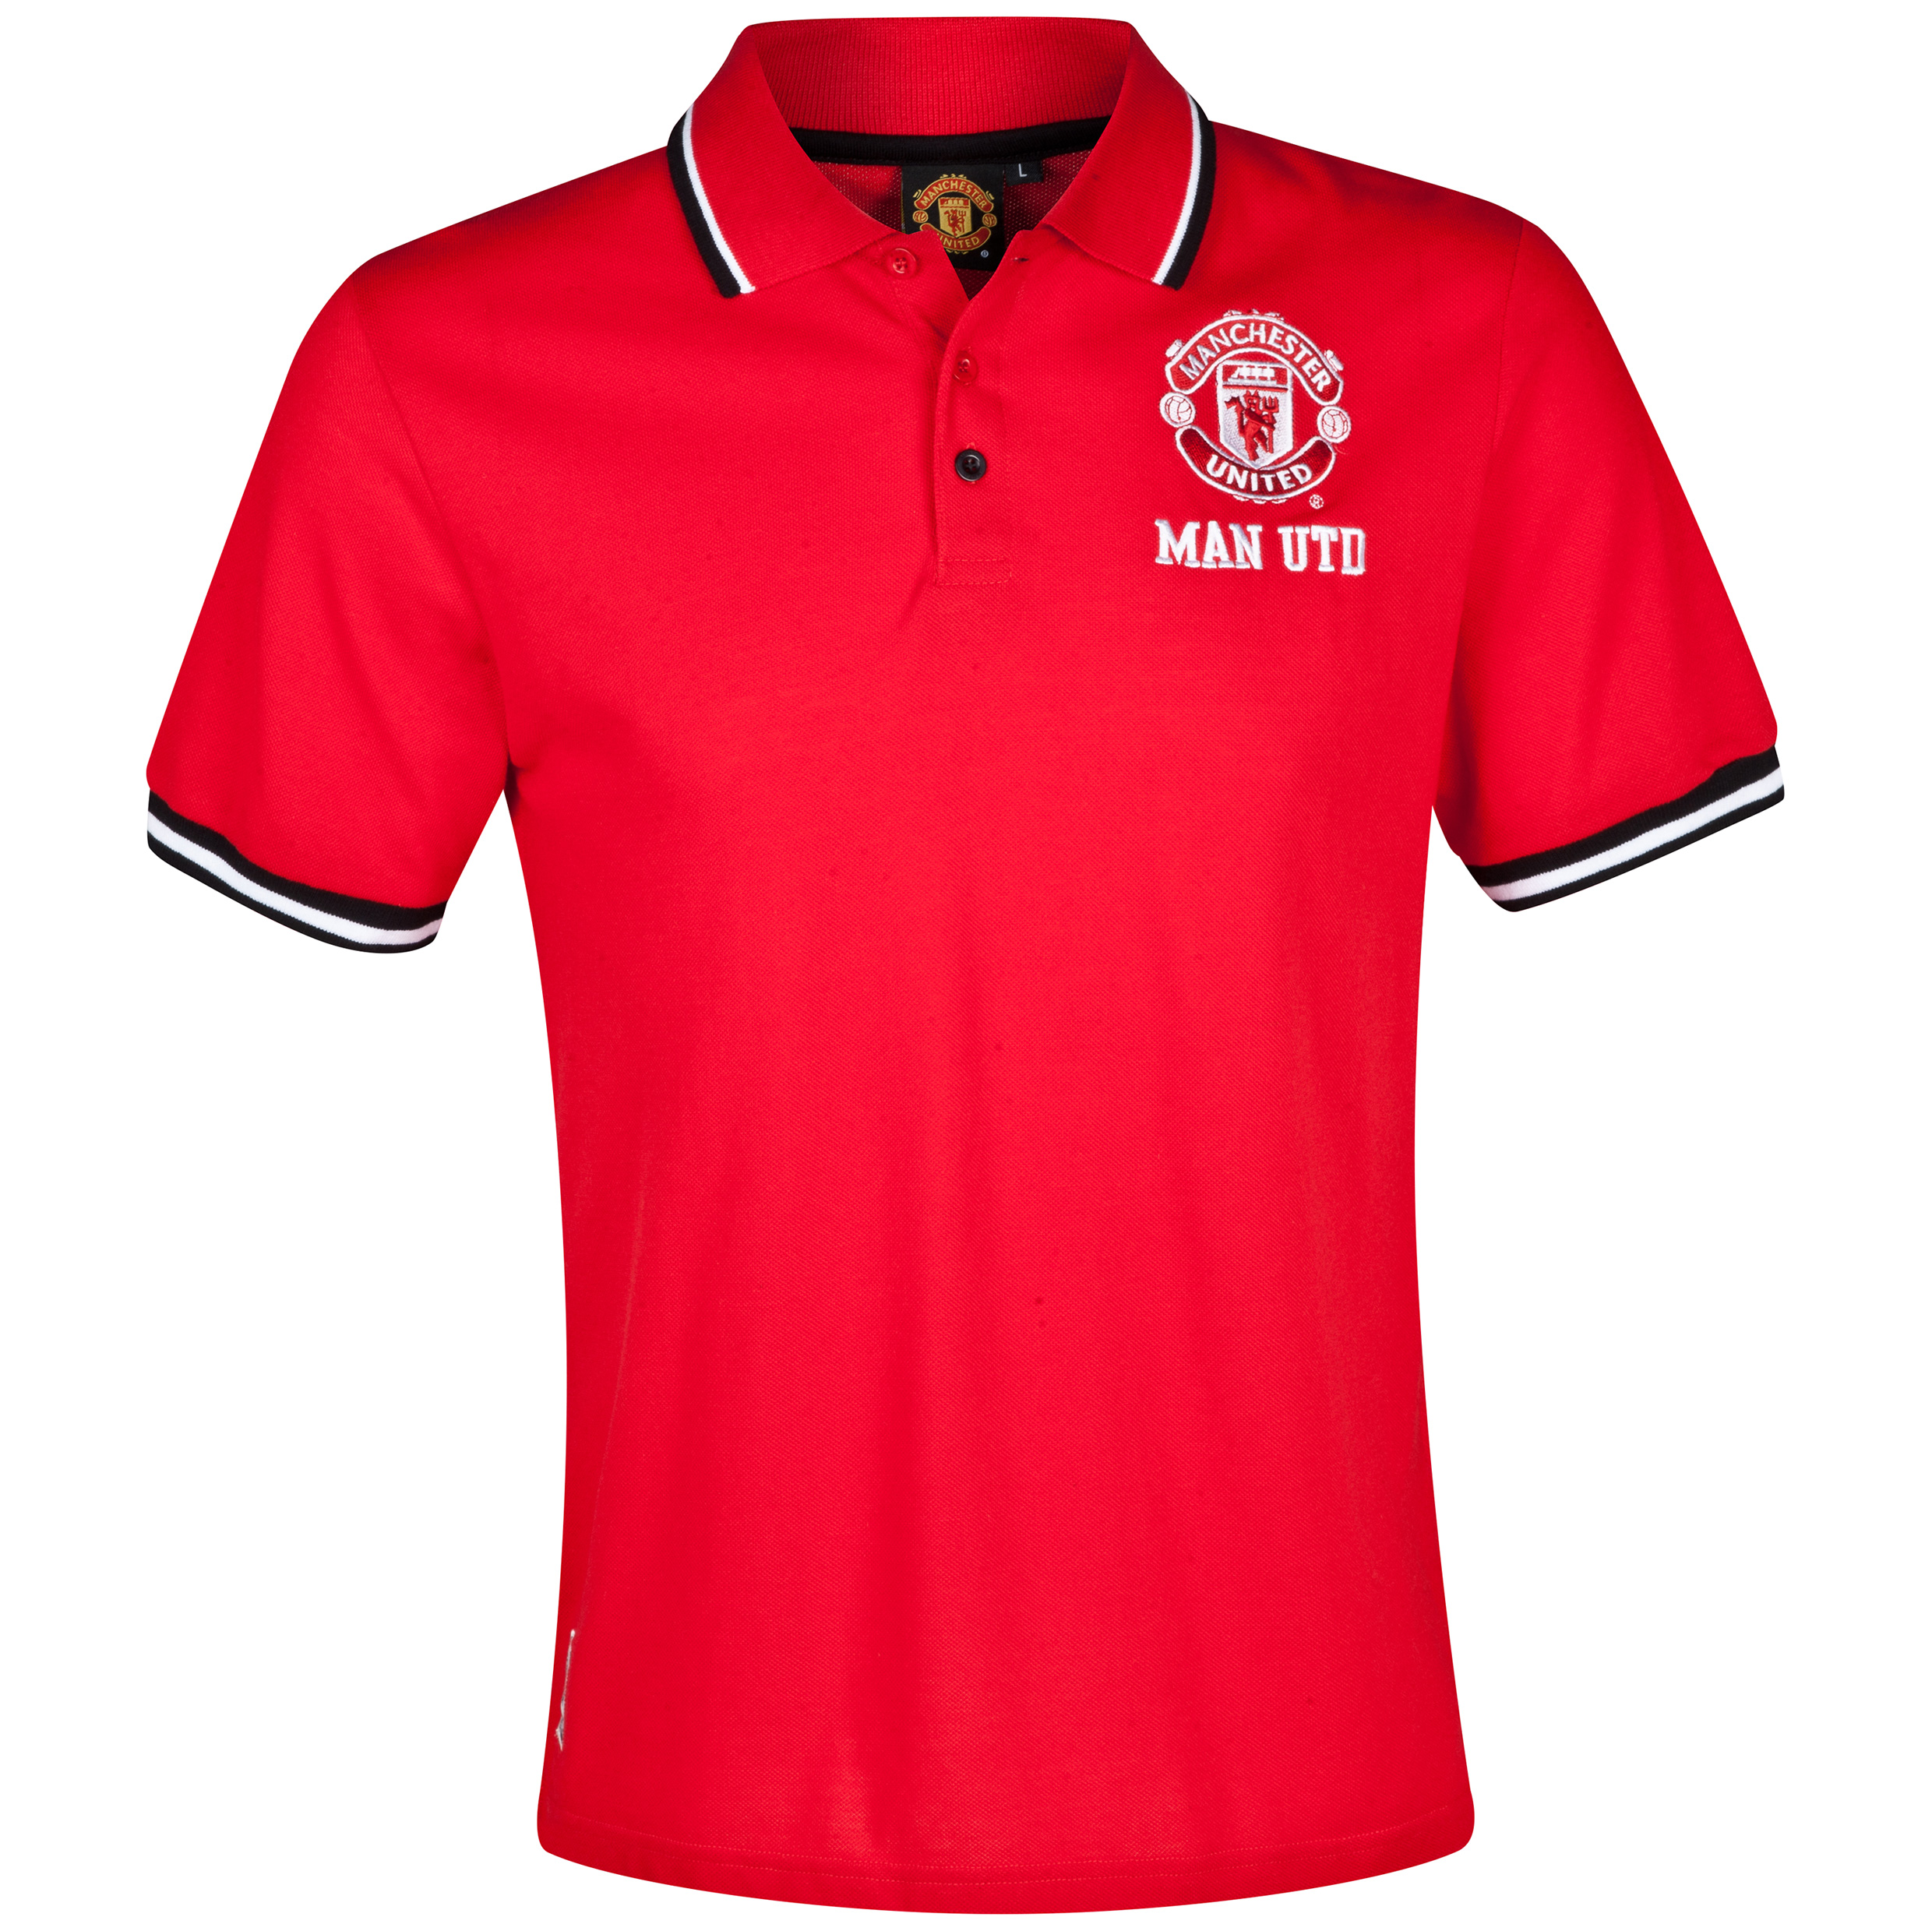 Manchester United Tipped Polo Shirt Mns